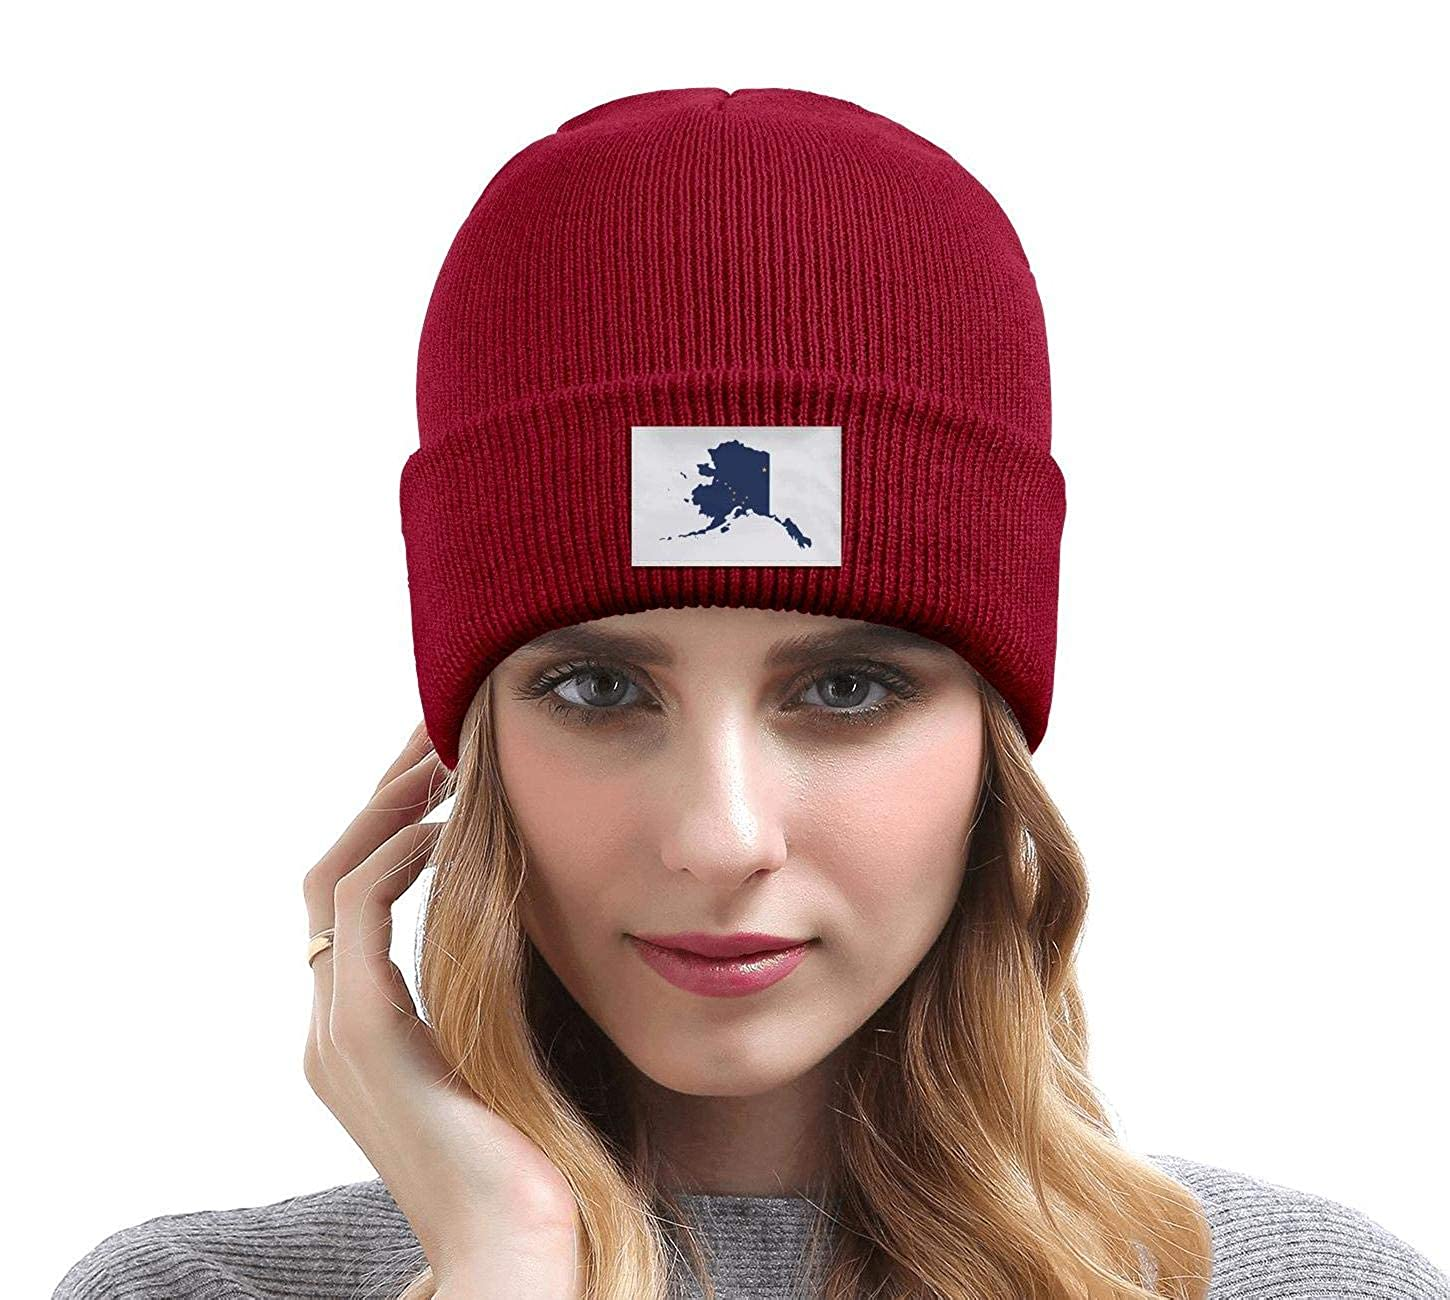 Unisex Drink Wisconsinbly in Cute Fonts Knit Hat Deliciously Soft Beanie Hat for Mens Womens